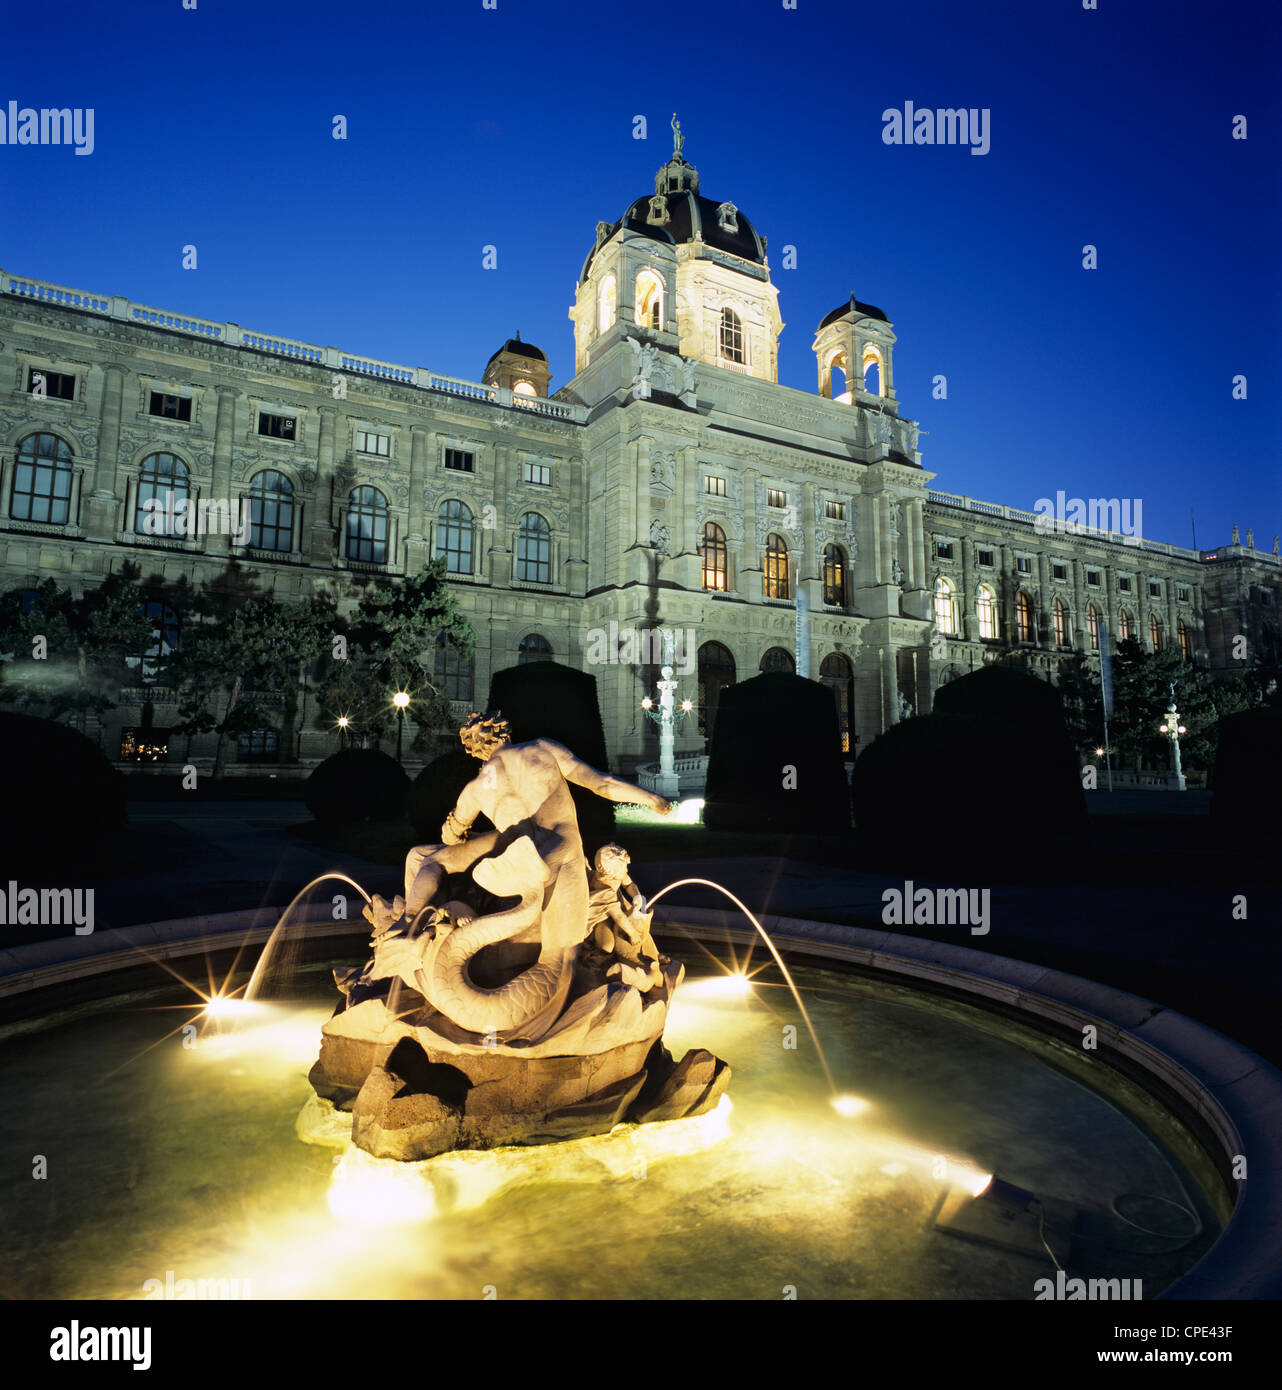 The Natural History Museum at night, Maria Theresien Platz, Vienna, Austria, Europe - Stock Image